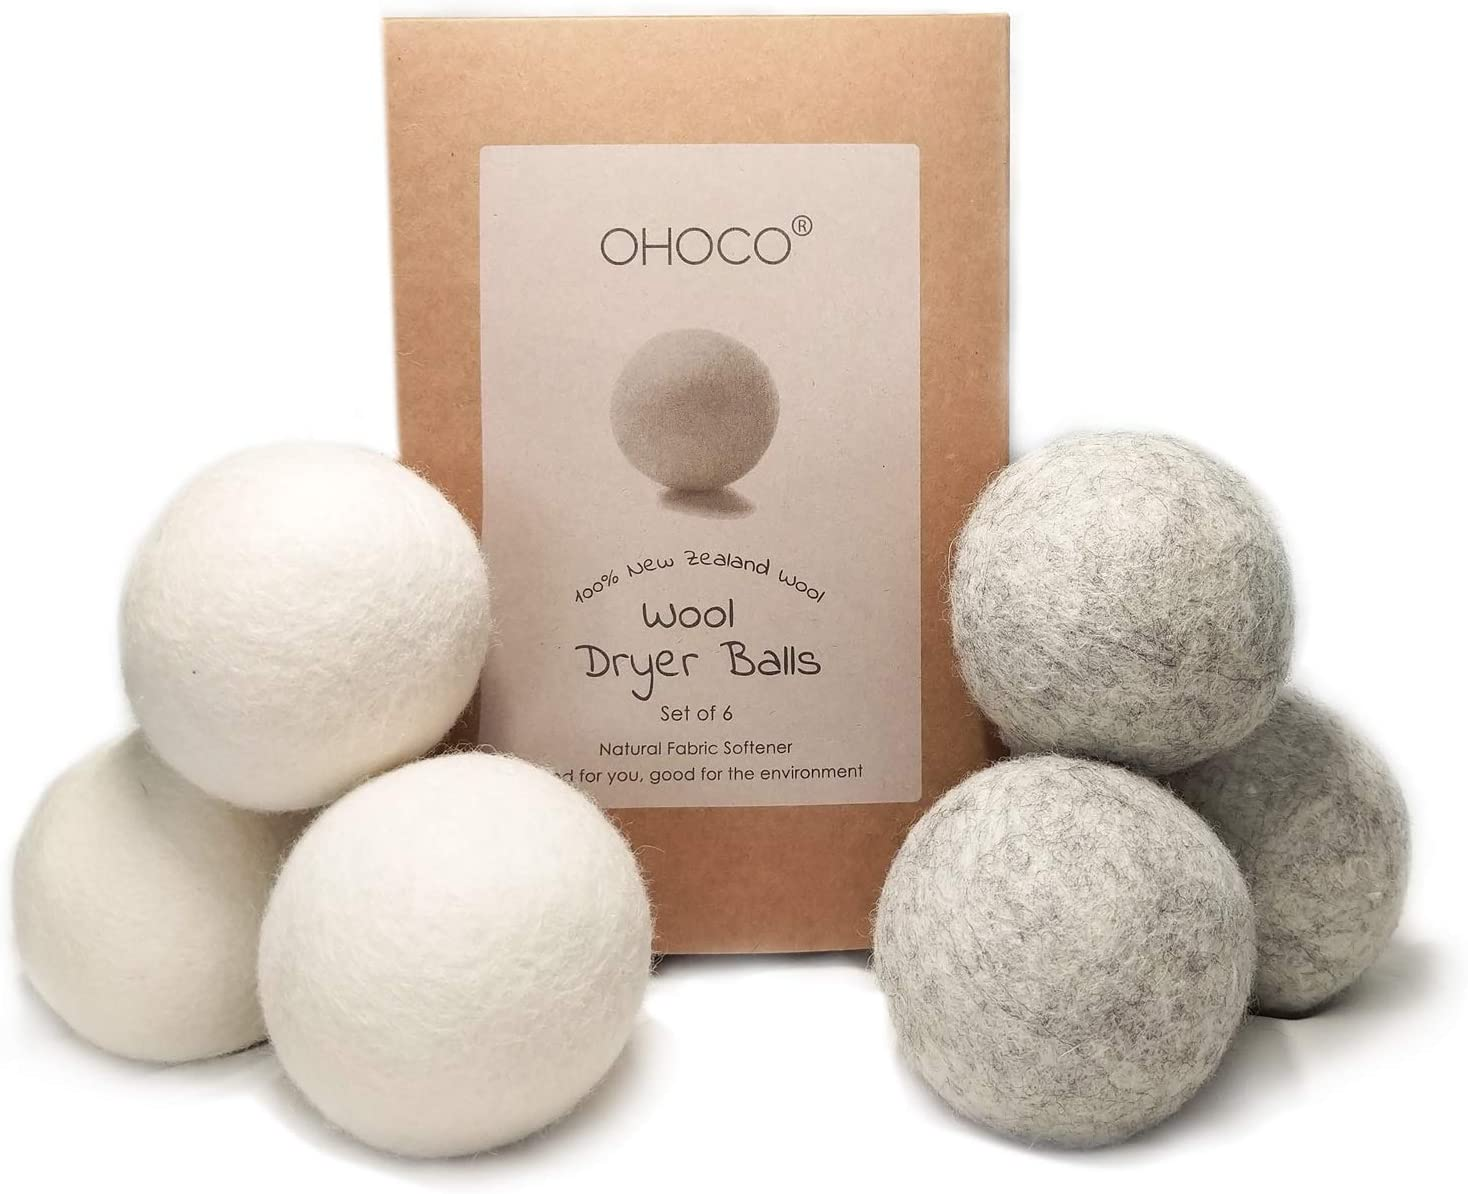 OHOCO Wool Dryer Balls, Organic Natural Wool for Laundry, Fabric Softening - Anti Static, Baby Safe, No Lint, Odorless and Reusable 6Pack, 3 Gray 3 White